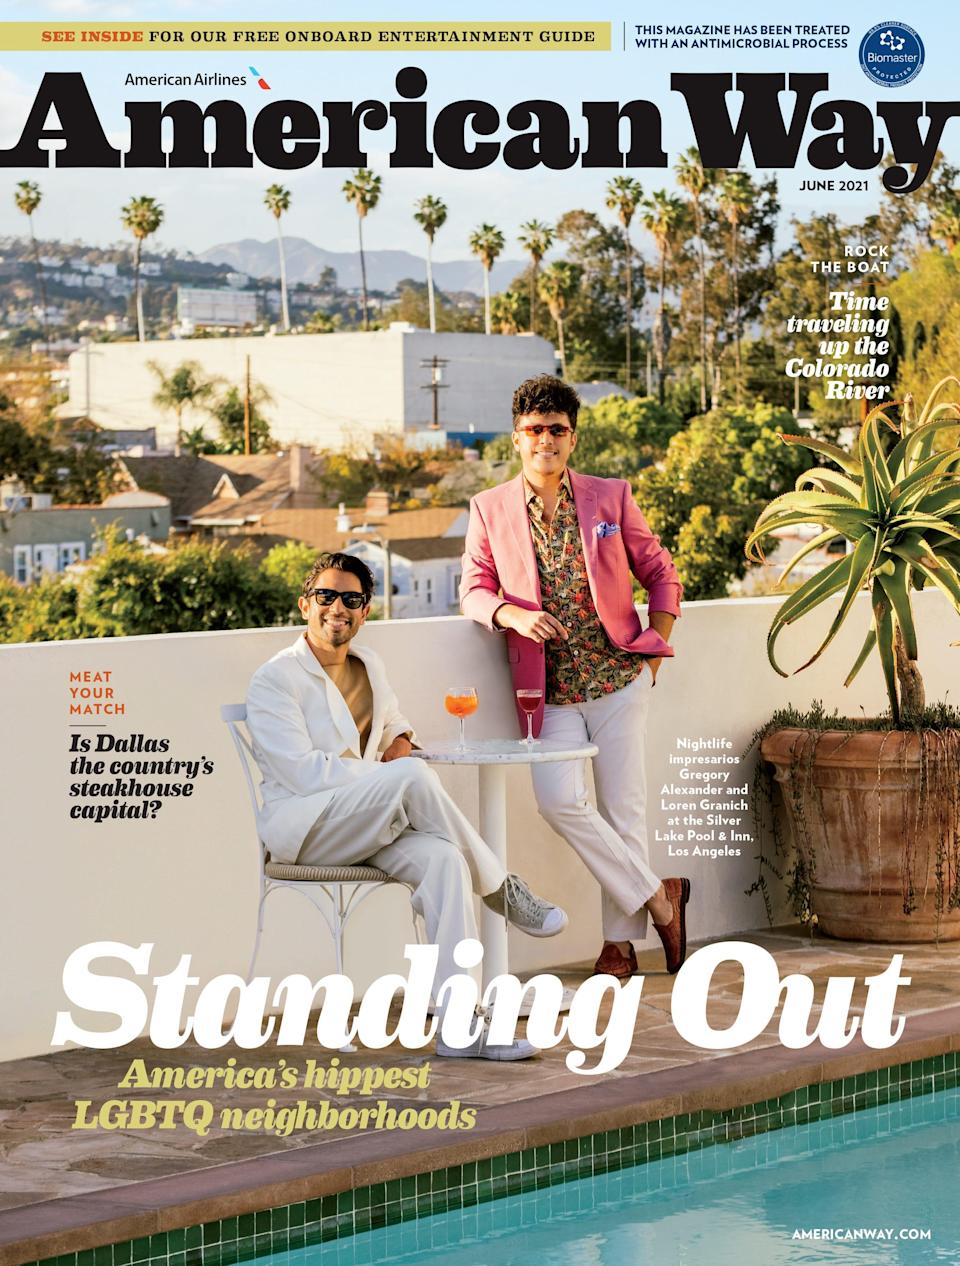 The latest issue of American Airlines' inflight magazine features a story on LGBTQ neighborhoods across the country and the Colorado River